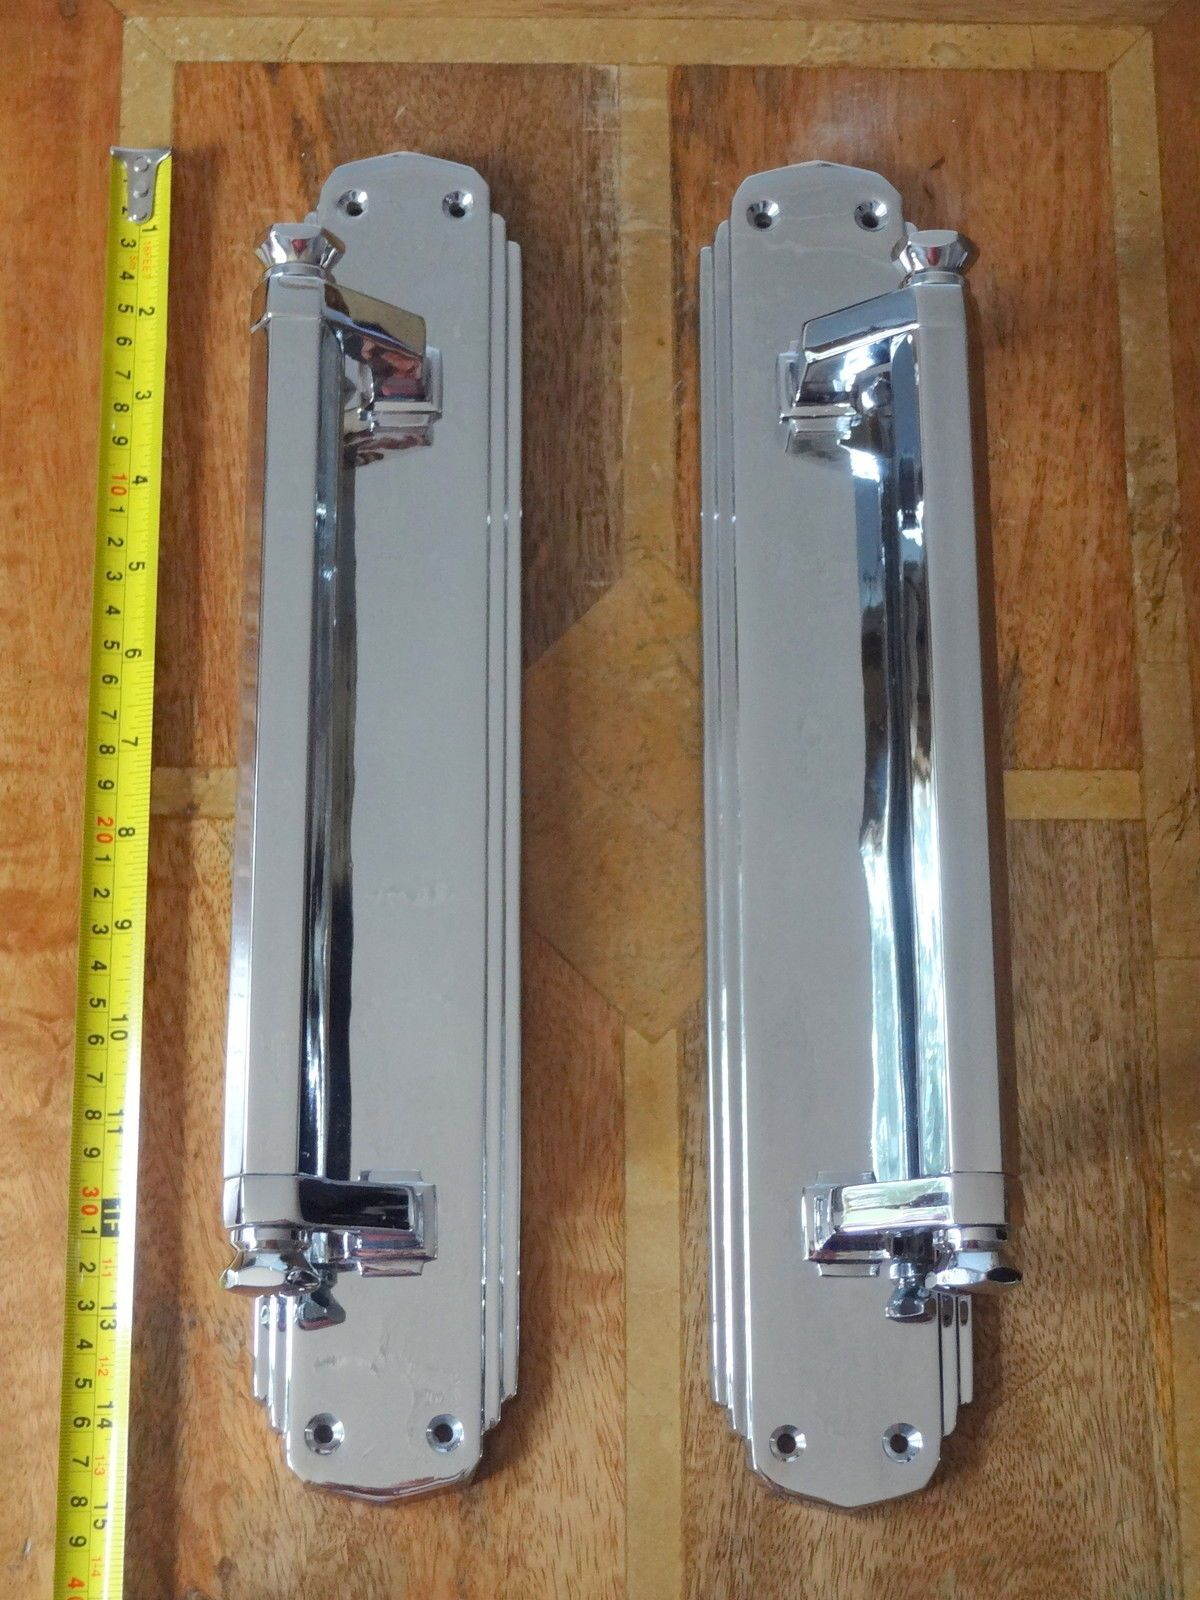 1 Pair Of Chrome Art Deco Style Door Pull Handles Large 15 Long So If You Want Us To Good Condition Ebay Art Deco Door Door Pull Handles Art Deco